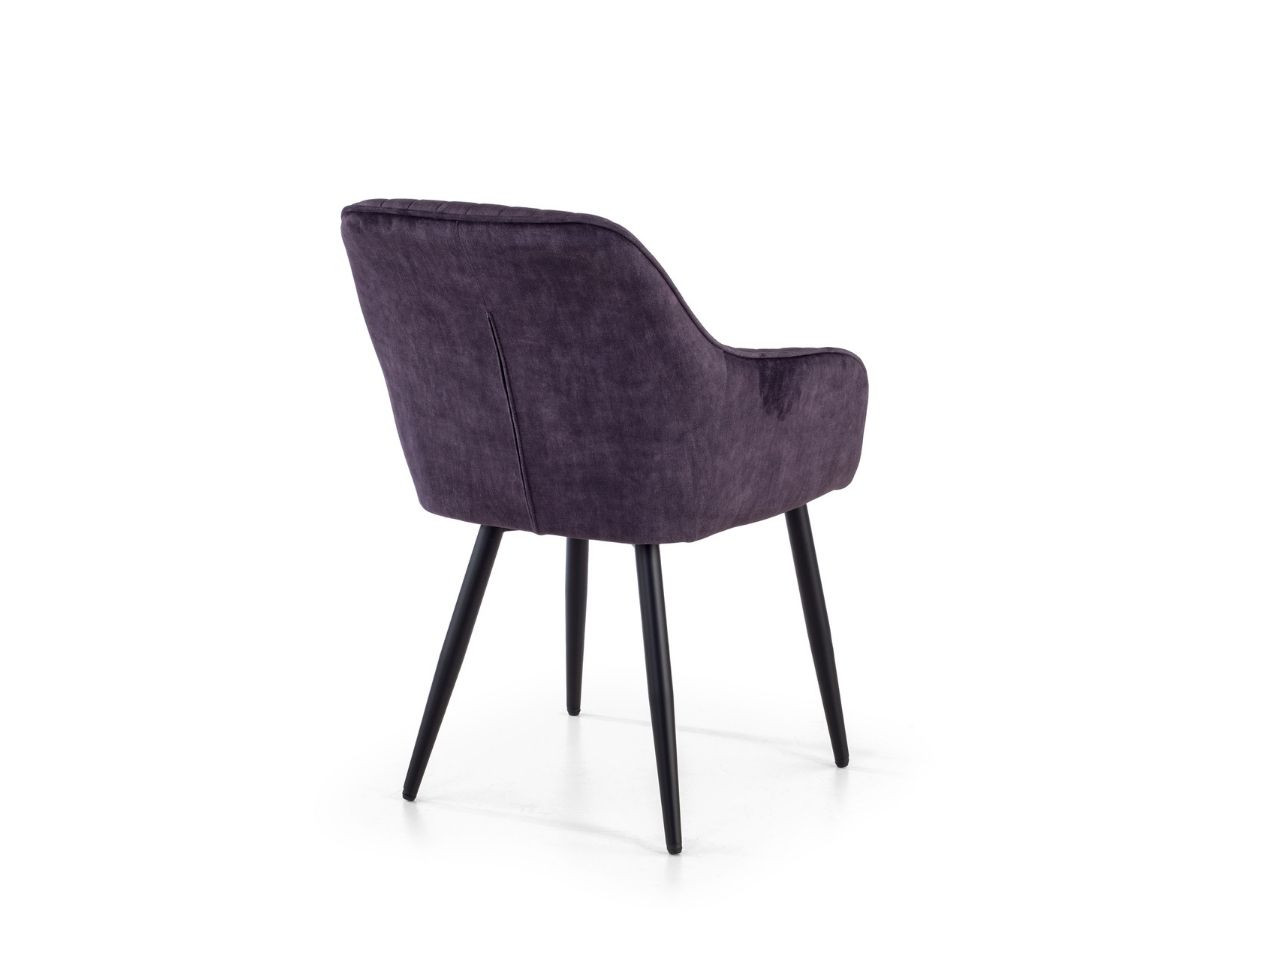 Composicion Mueble Tv Mueble Tv Urban Muebles Tv Madera